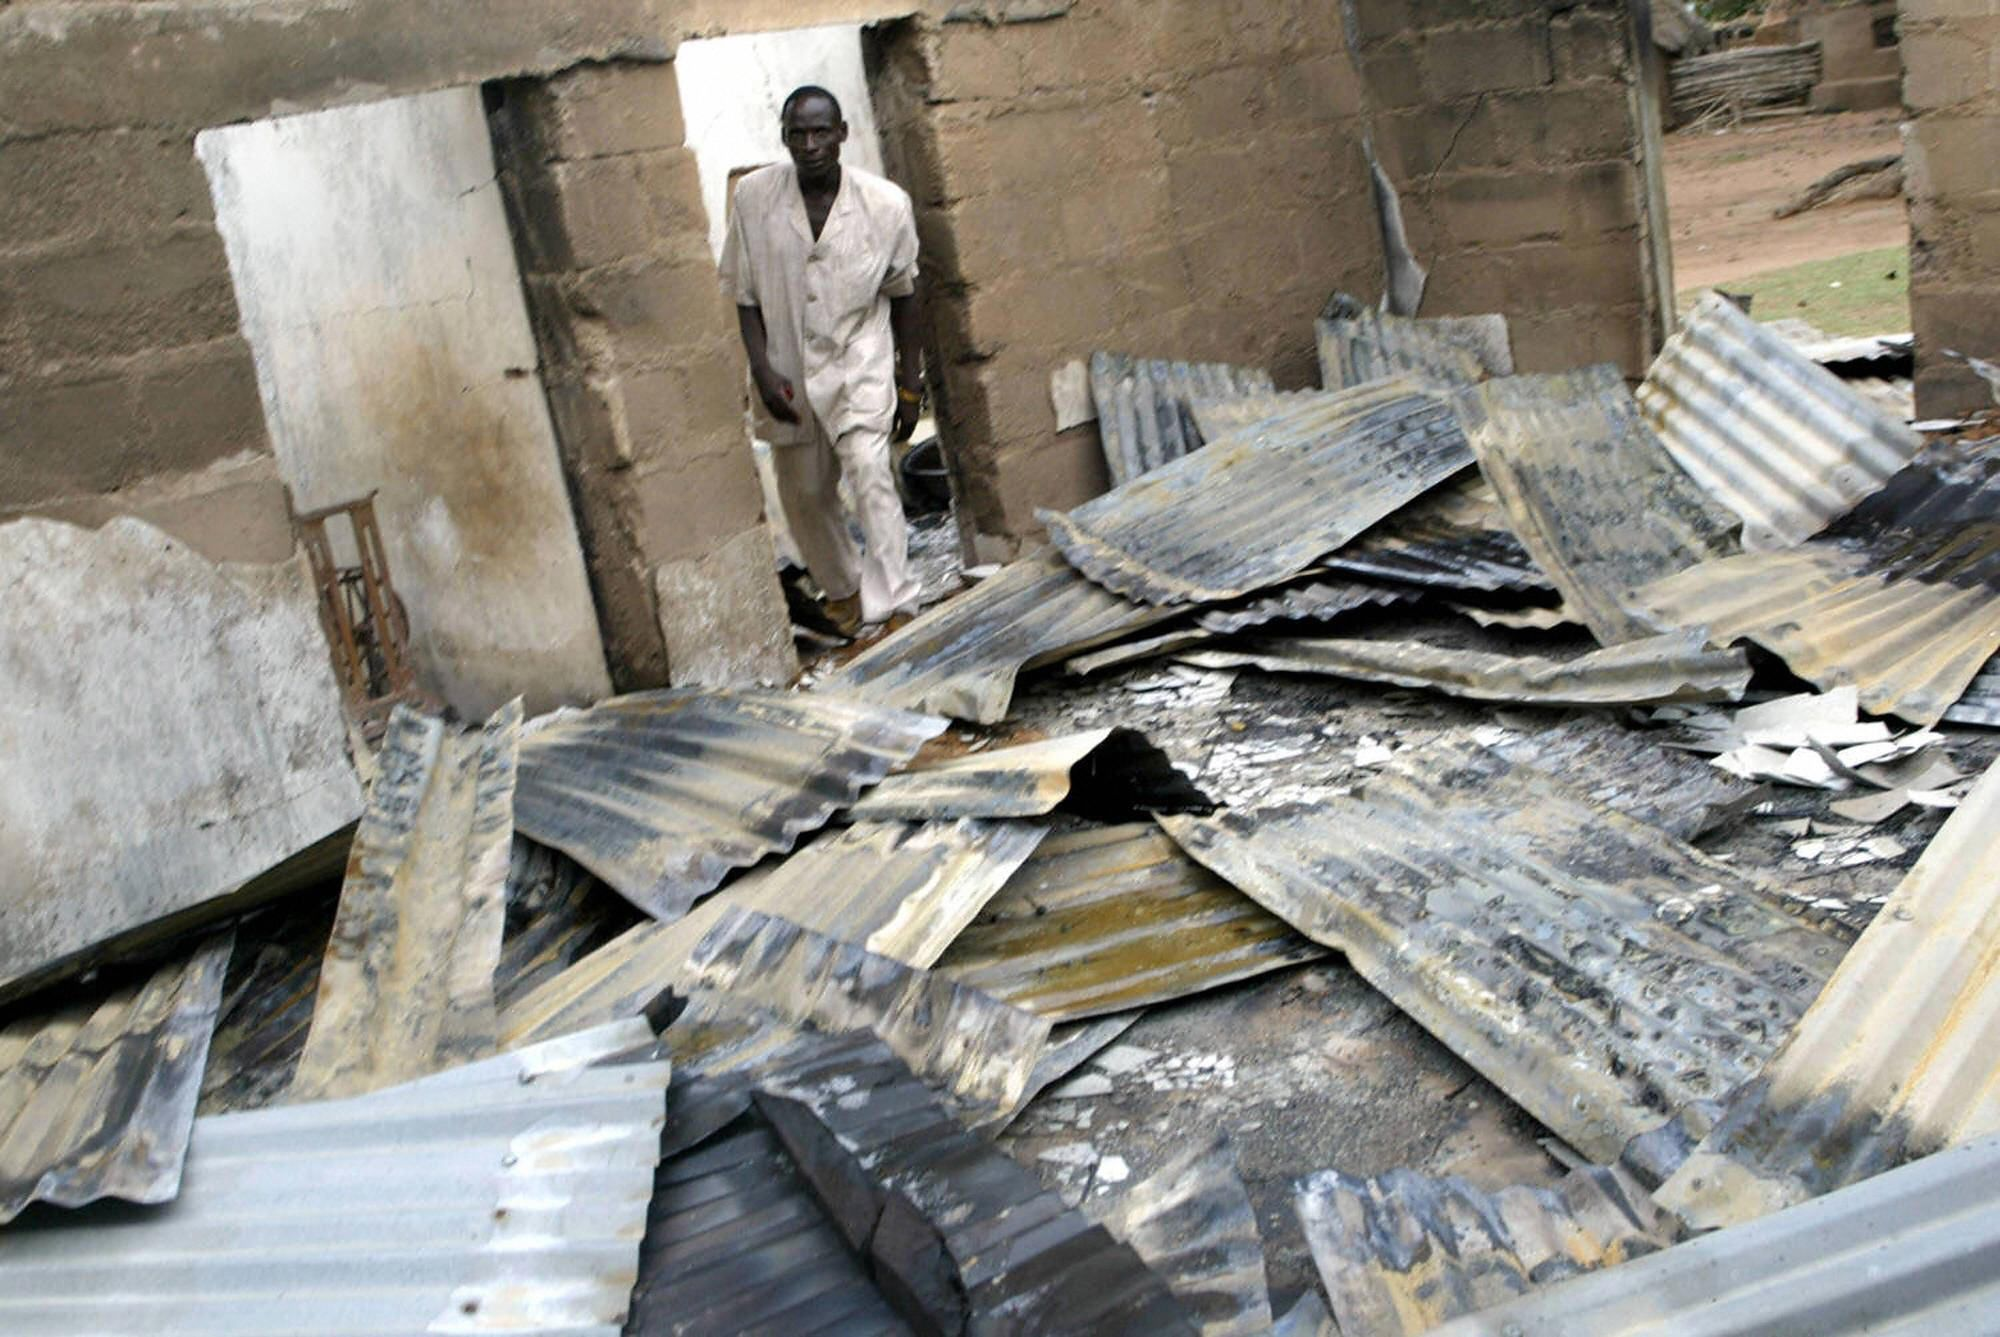 A pastor surveys a church destroyed by Fulani herdsmen in Plateau state.